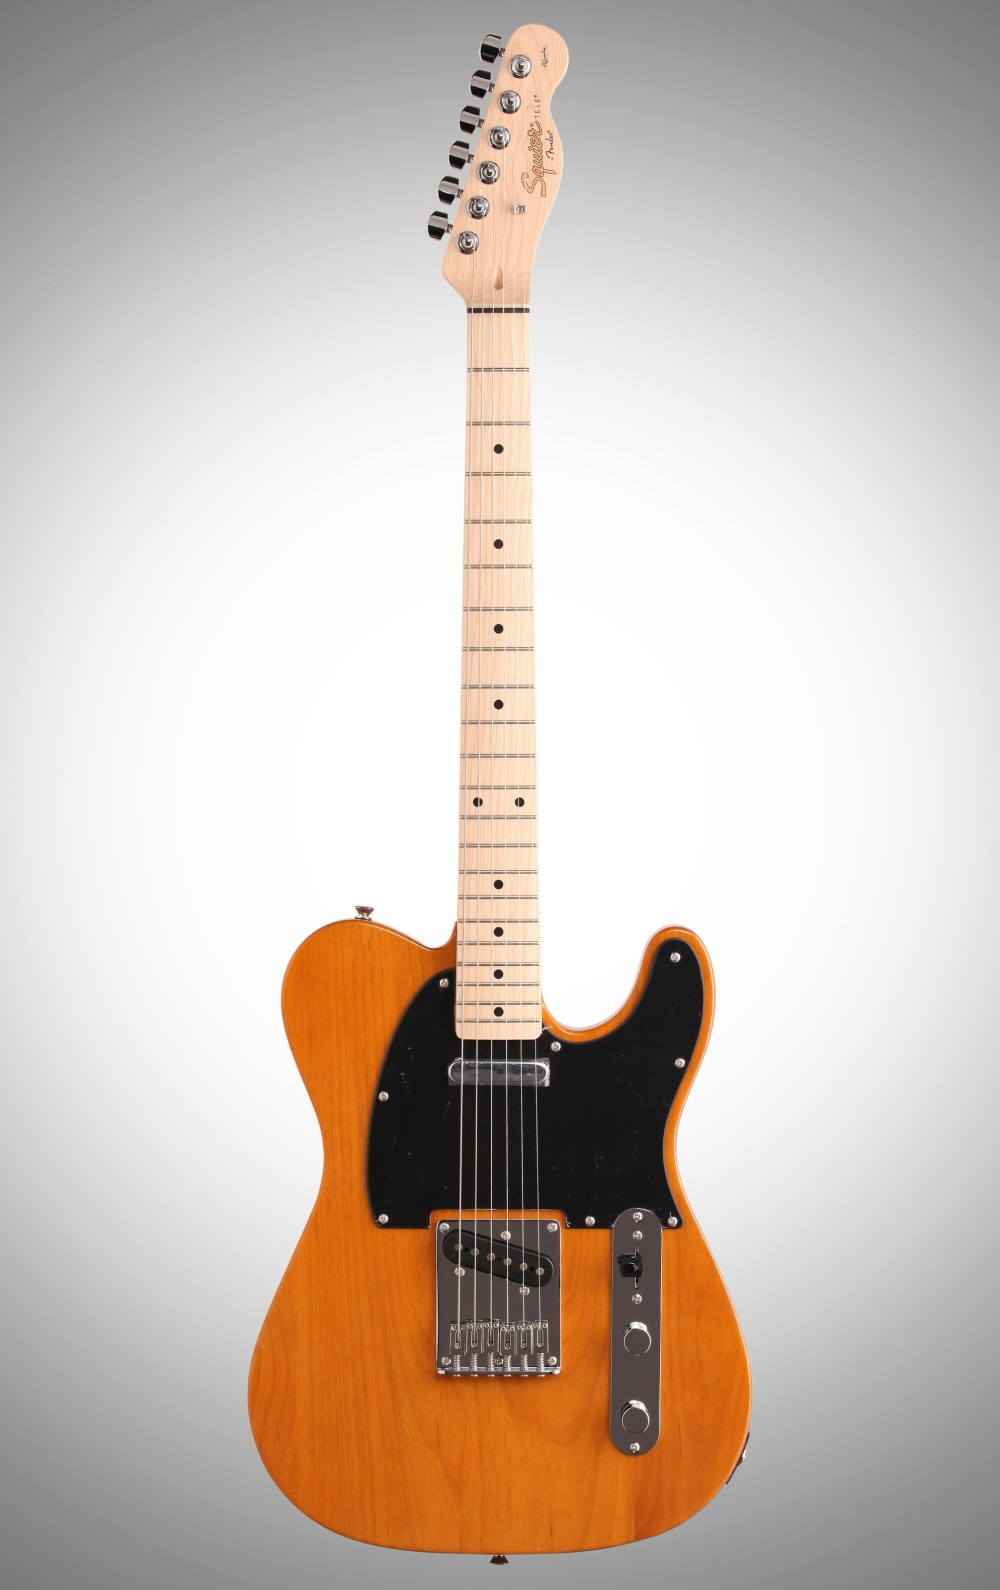 medium resolution of 1 full straight front na 21b1a190cb8c543028238beb3bfa55a3 squier affinity telecaster special maple butterscotch blonde telecaster 3 way